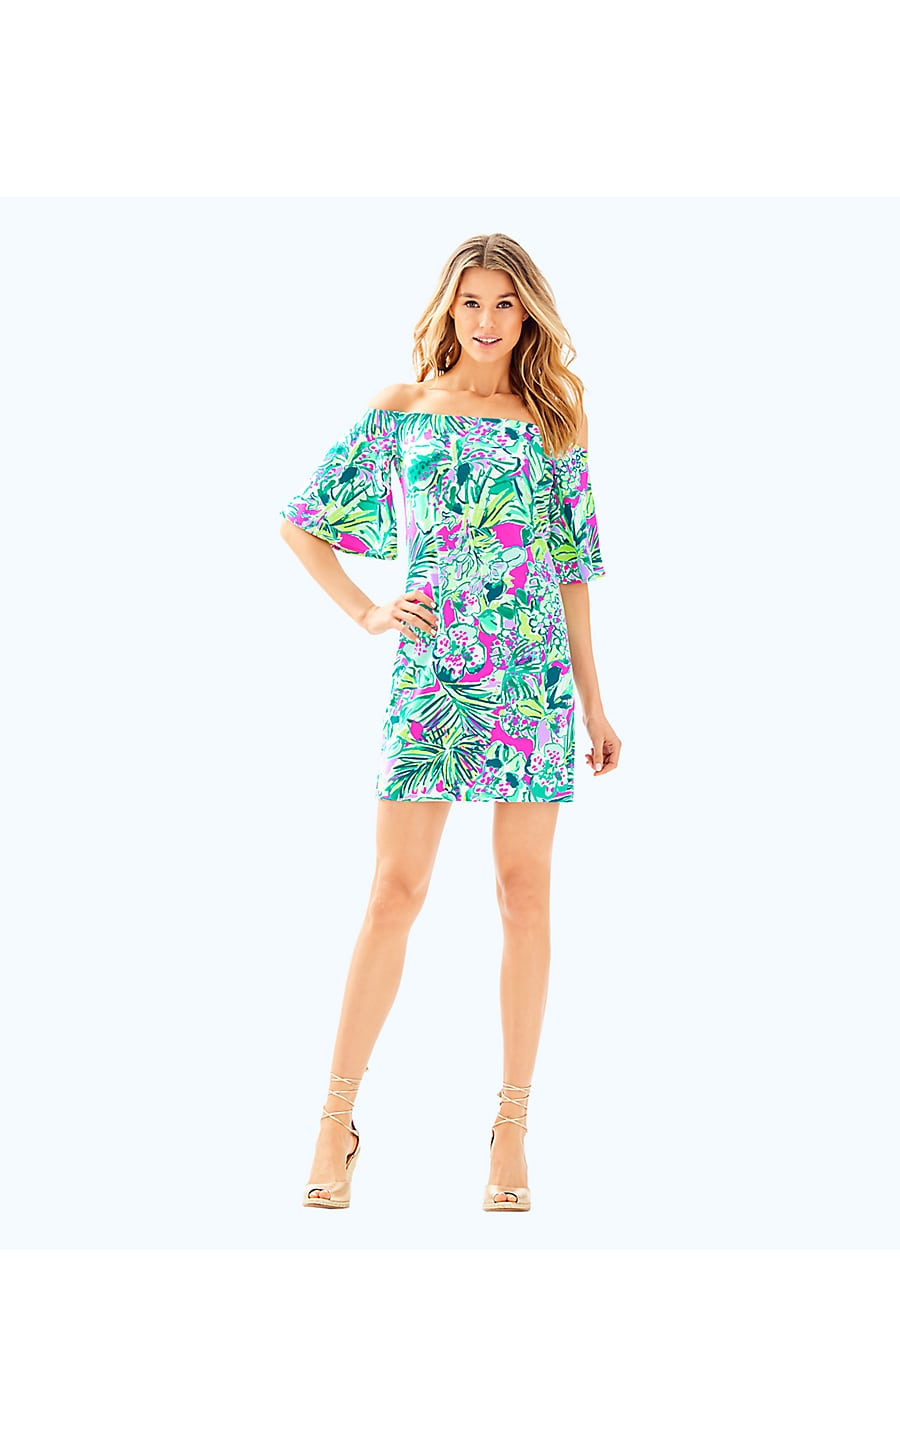 ec40d0c11ff Fawcett dress early bloomer lilly pulitzer store lifes a beach jpg 900x1445 Early  bloomer